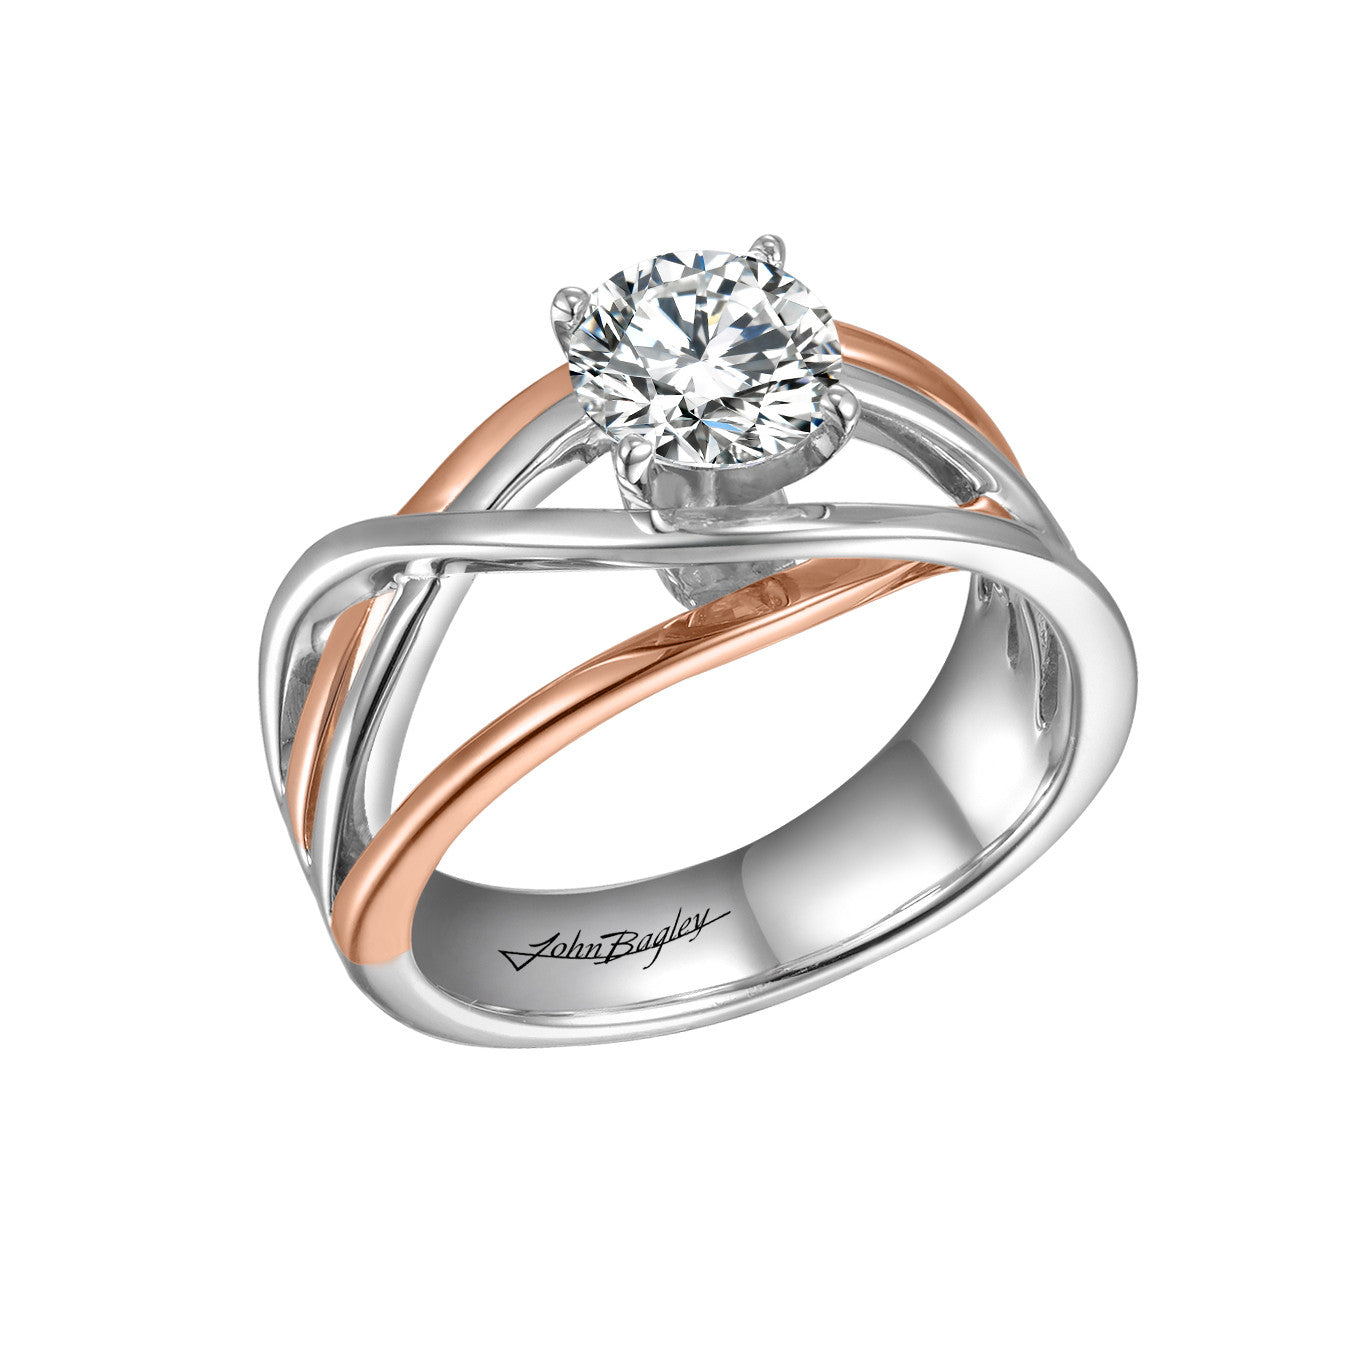 14kt White and Rose Gold Solitaire Engagement Ring